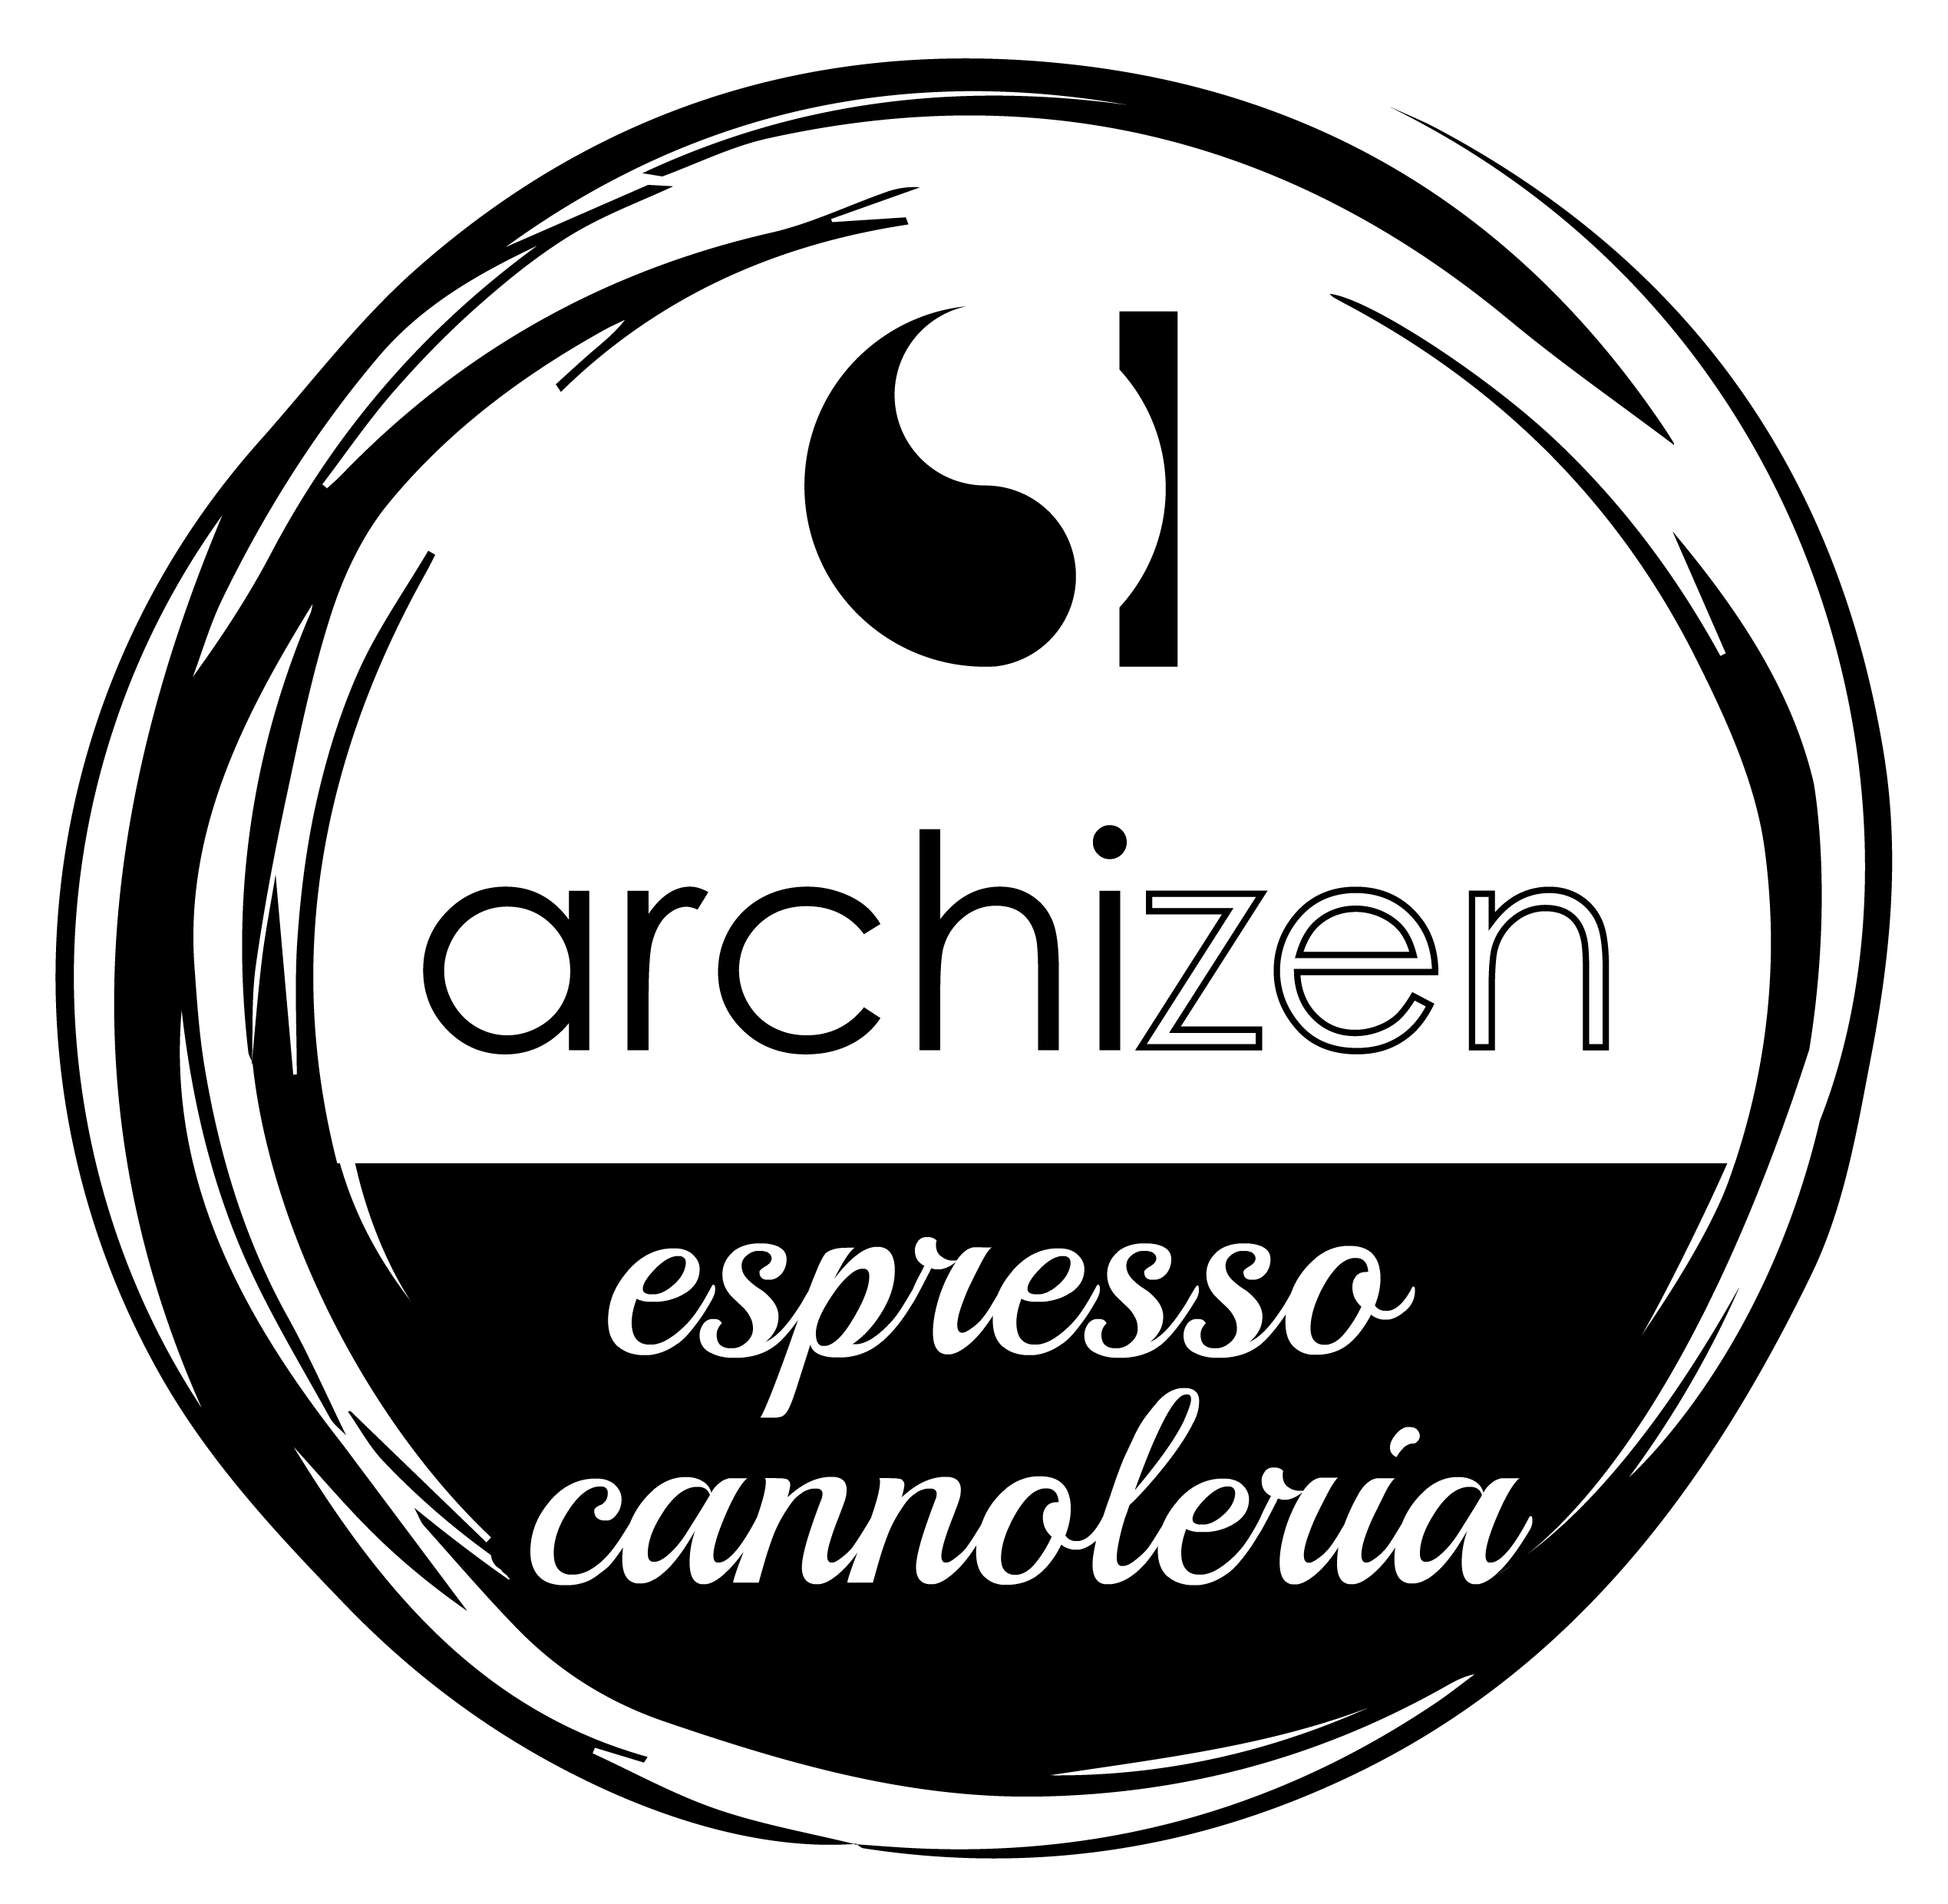 Archizen Espresso Cannoleria first cannoli bar in Sydney serving the best coffee in Sydney the best cannolo in Sydney the best muffins in Sydney the best panini sandwiches in Sydney the best cannoli in Sydney the best gelato in Sydney Archizen Architects Sydney Care Architectural Design Child Care Aged Care Health Care Pet Care Archizen Architects Veterinary Clinic Animal Hospital Boarding Kennels Pet Hotels Architectural Design Sydney Best Coffee shop espresso bar restaurant in South Hurstville best Catering Sutherland Shire best Sicilian Sicily cannoli towers bazooka muffins friands scrolls cronuts donuts doughnuts Italian scicilan cannoli towers bazooka sydney acai breakfast lunch gluten free vegetarian